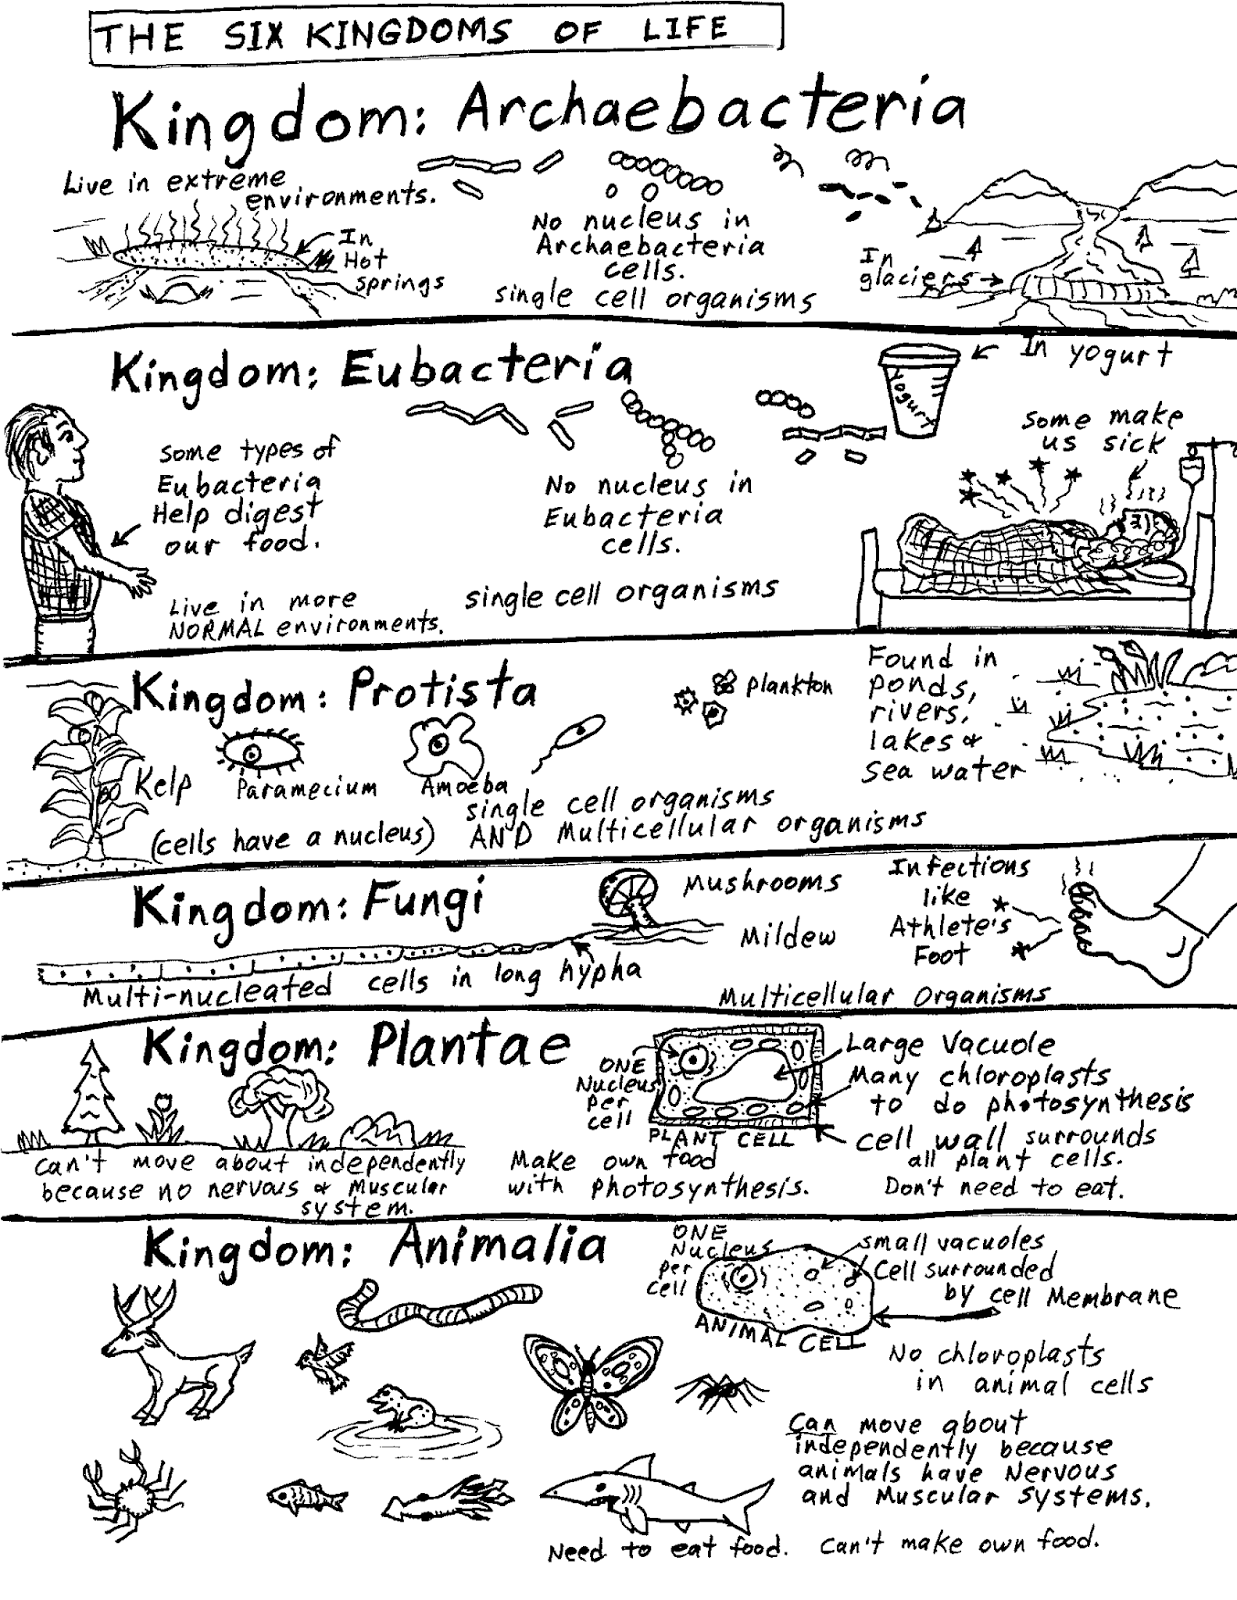 Robin's Great Coloring Pages: Six Kingdoms of Life